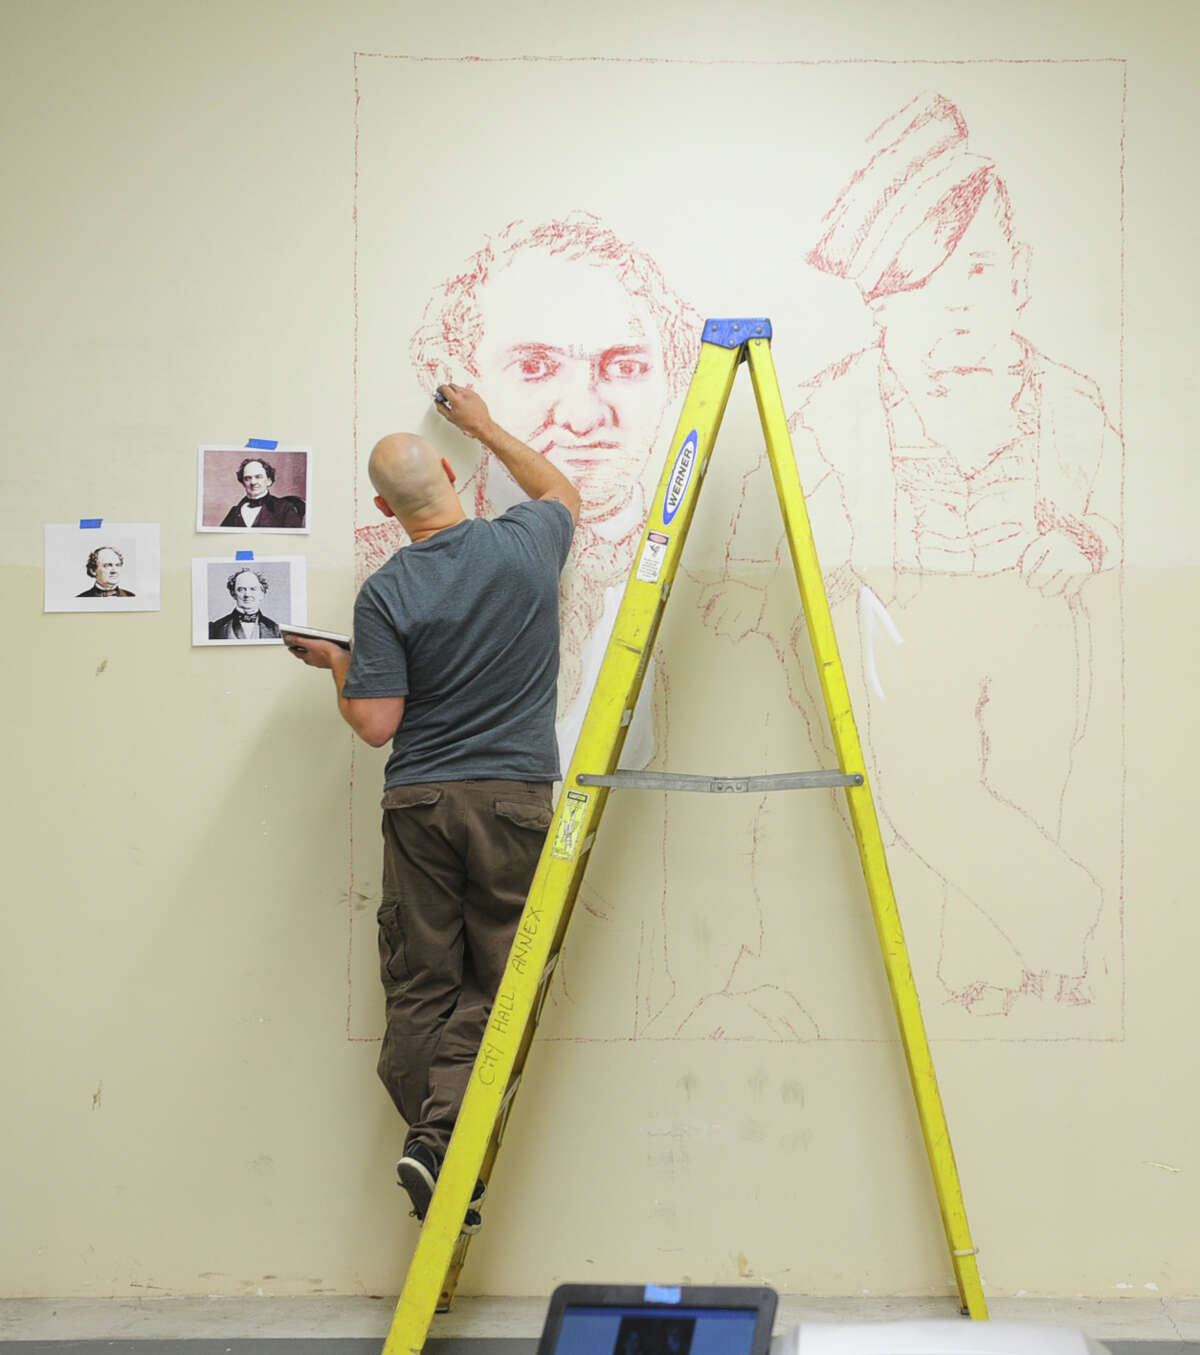 New York artist Roberto Martinez works on a stamp mural of P.T. Barnum and Tom Thumb in the former Probate CourtâÄôs vault Tuesday, Oct. 29, 2013 at McLevy Hall in downtown Bridgeport, Conn. The historic building will become a new home for artists beginning on Nov. 7 thanks to a state-city grant-funded partnership that will provide space for artists to create and sell their artwork from inside the building.